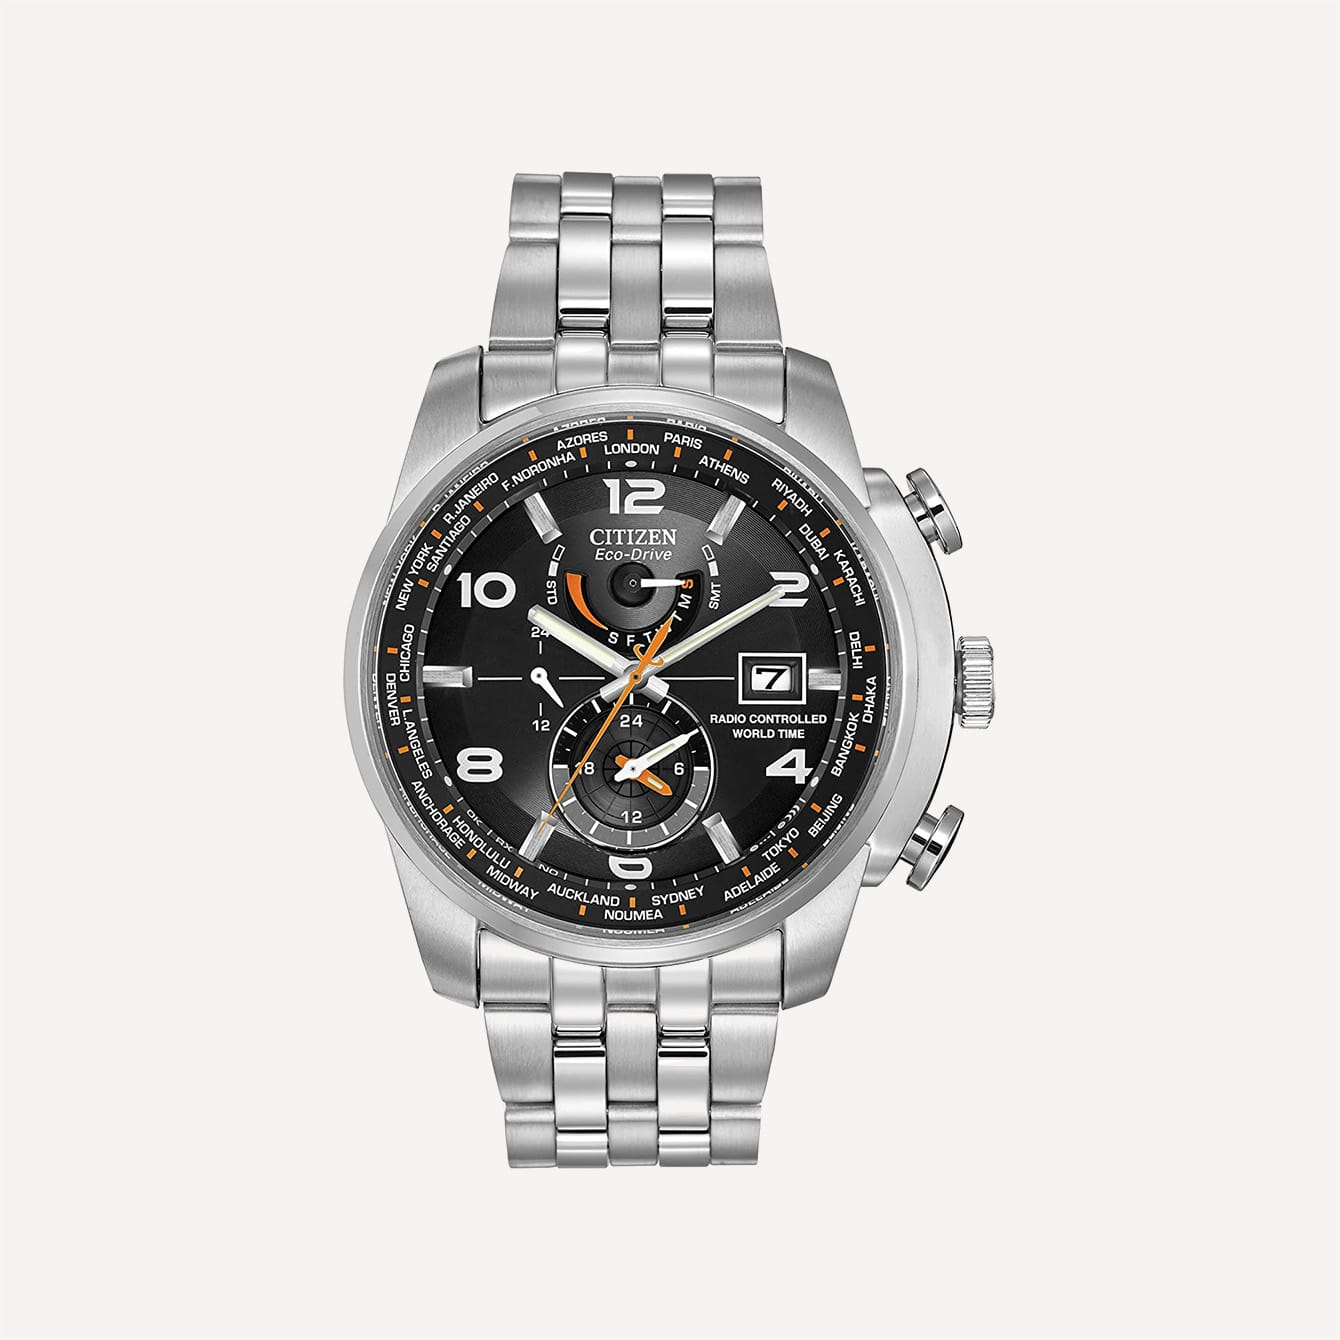 Citizen Watches AT9010 52E Time Zones Watch